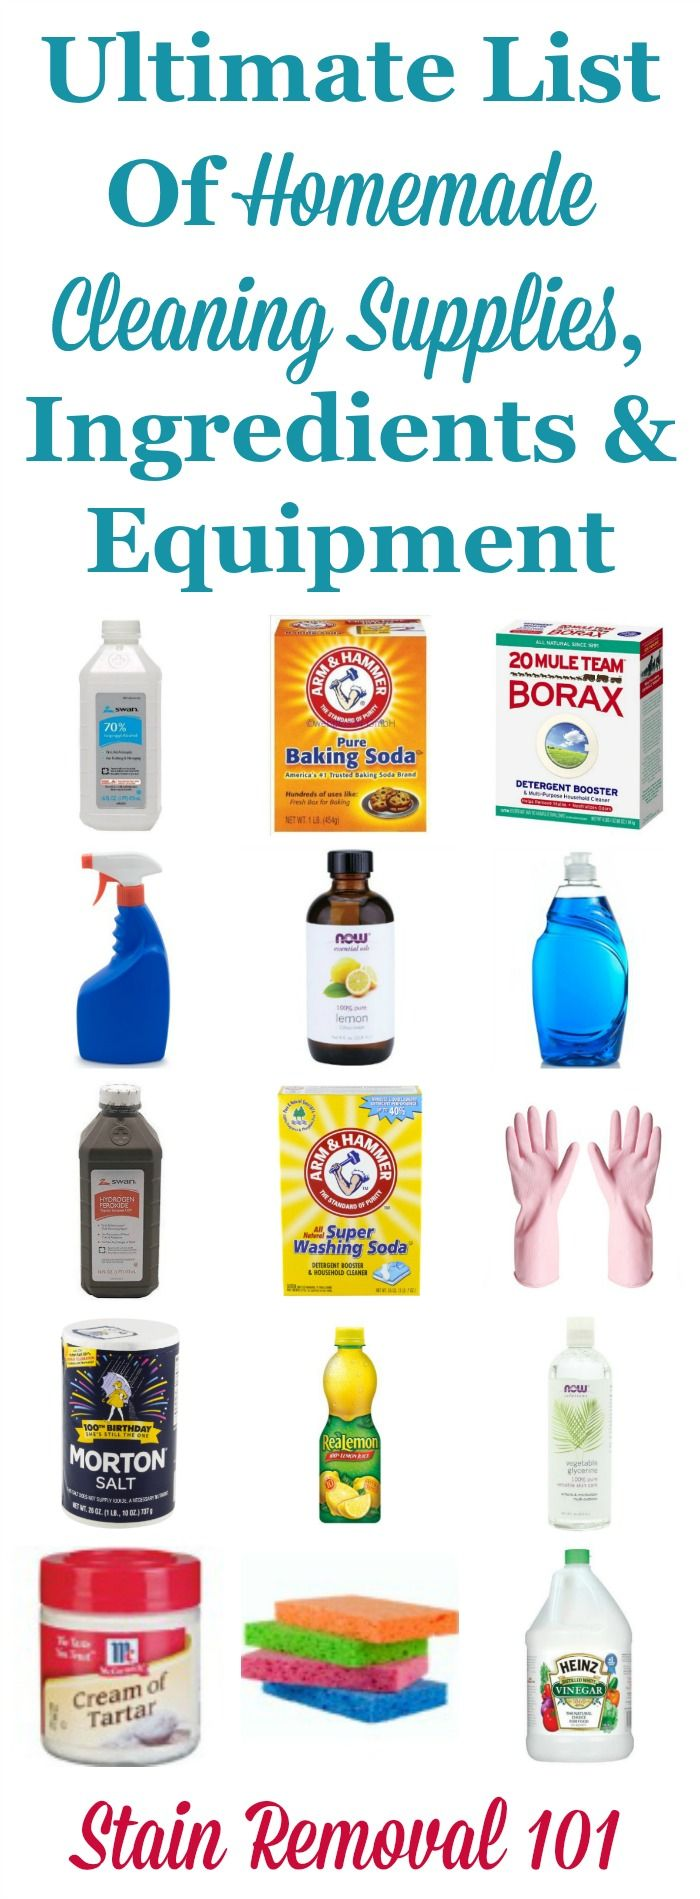 The ultimate list of homemade cleaning supplies  ingredients and equipment  needed to make all of. Best 25  Cleaning supplies ideas on Pinterest   Organizing